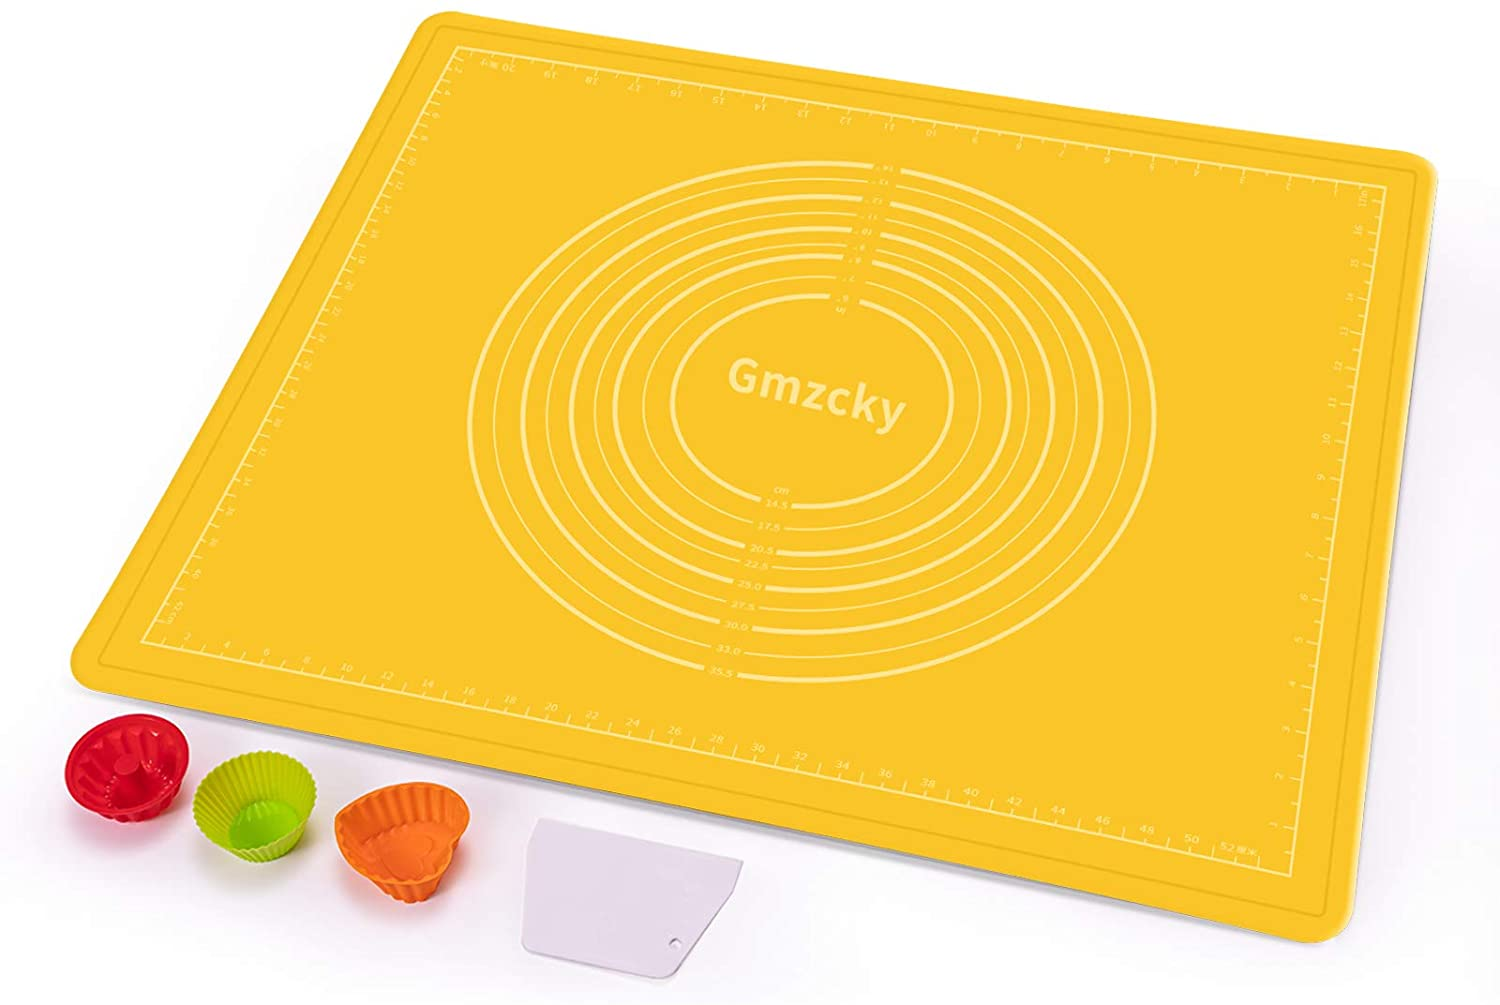 Gmzcky [23.4×19.5, orange]Upgraded Version- Baking Mat, a Waterproof Silicone Baking Mats With a Physical Scale [Non-Printed ] Baking Supplies, Makes Cooking Easier And More Hygienic.